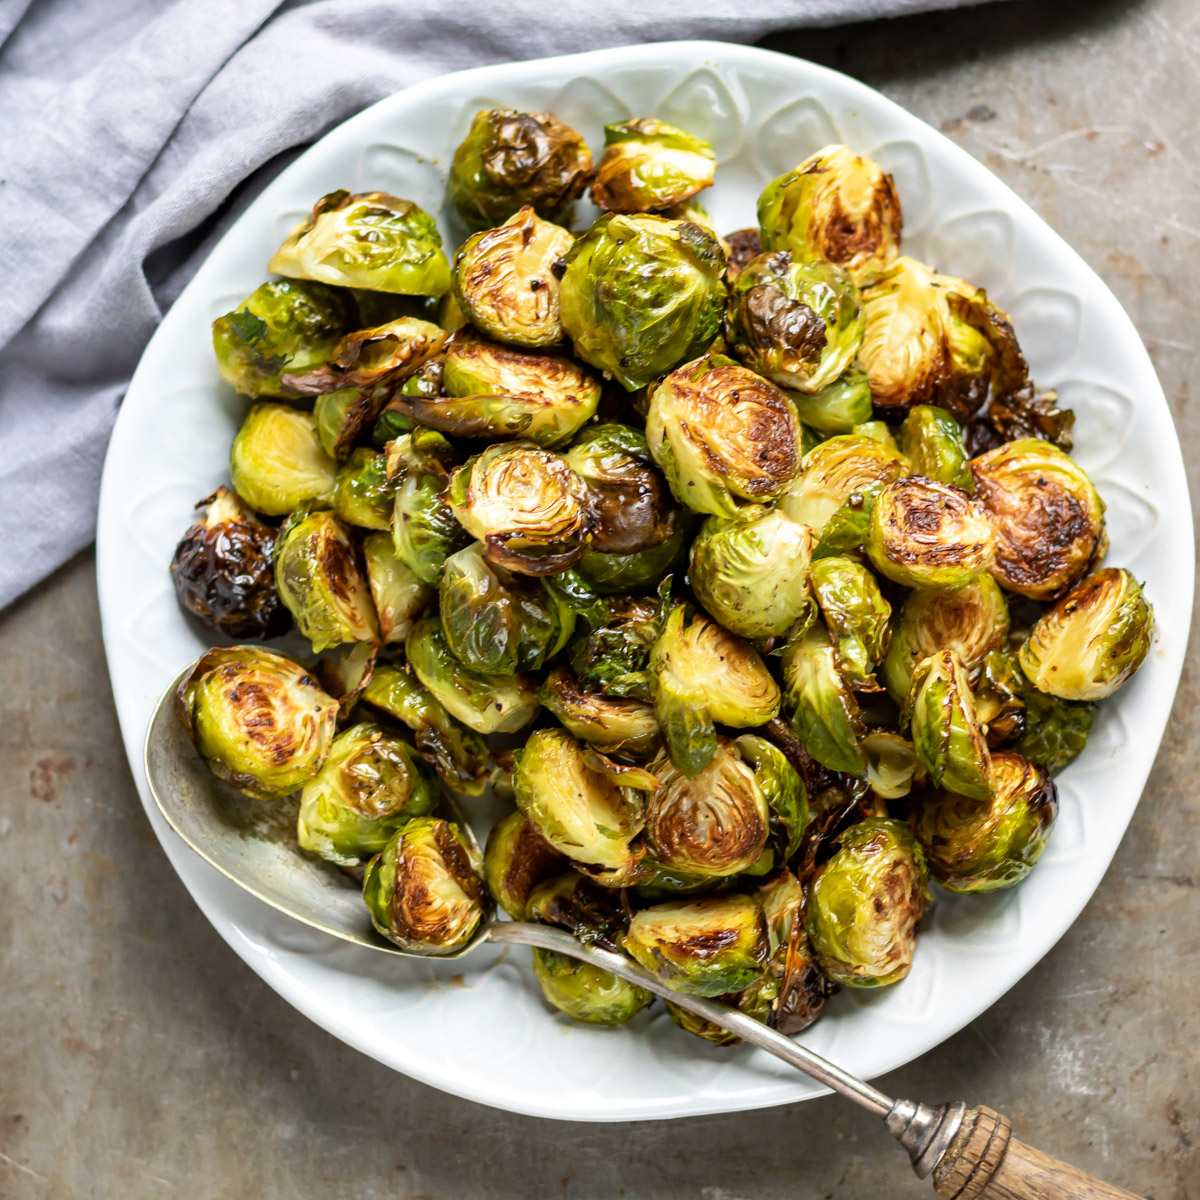 Dish of roasted sprouts.